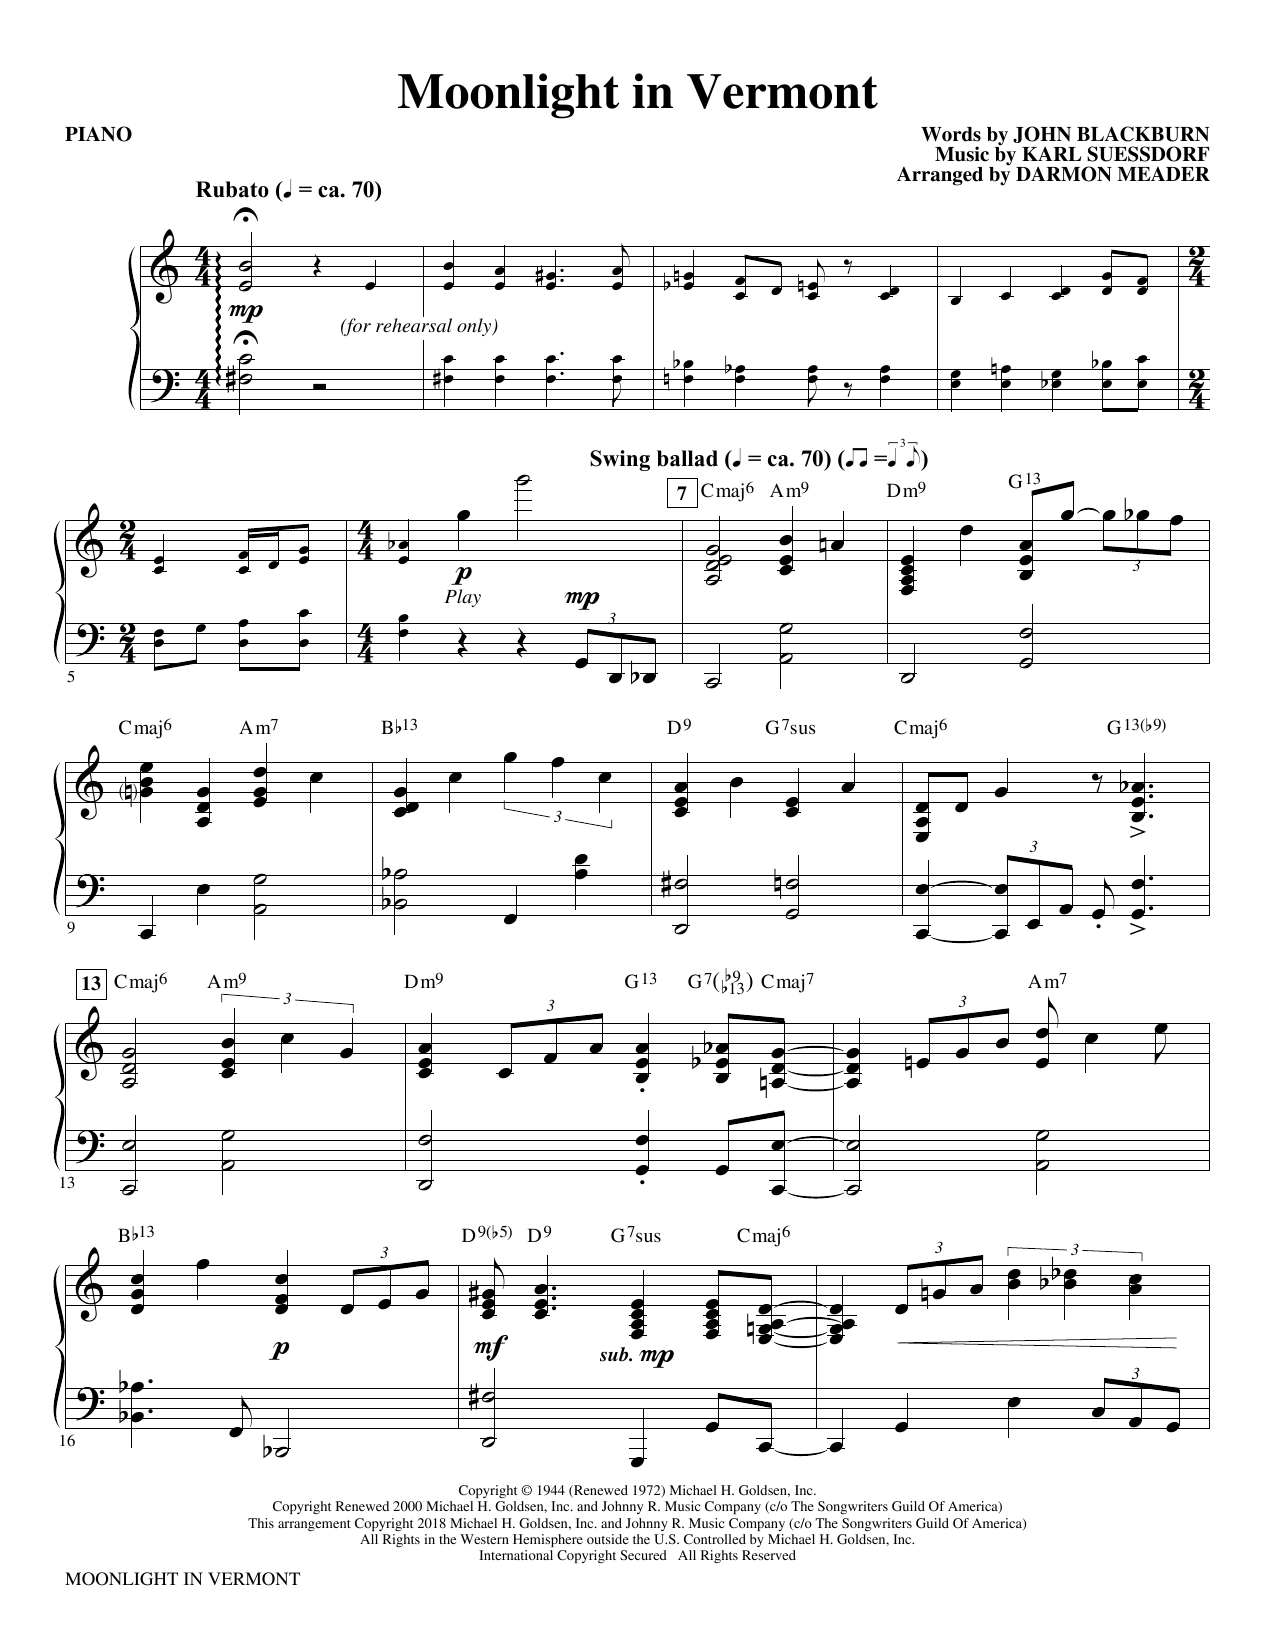 Moonlight in Vermont (arr. Darmon Meader) - Piano Sheet Music